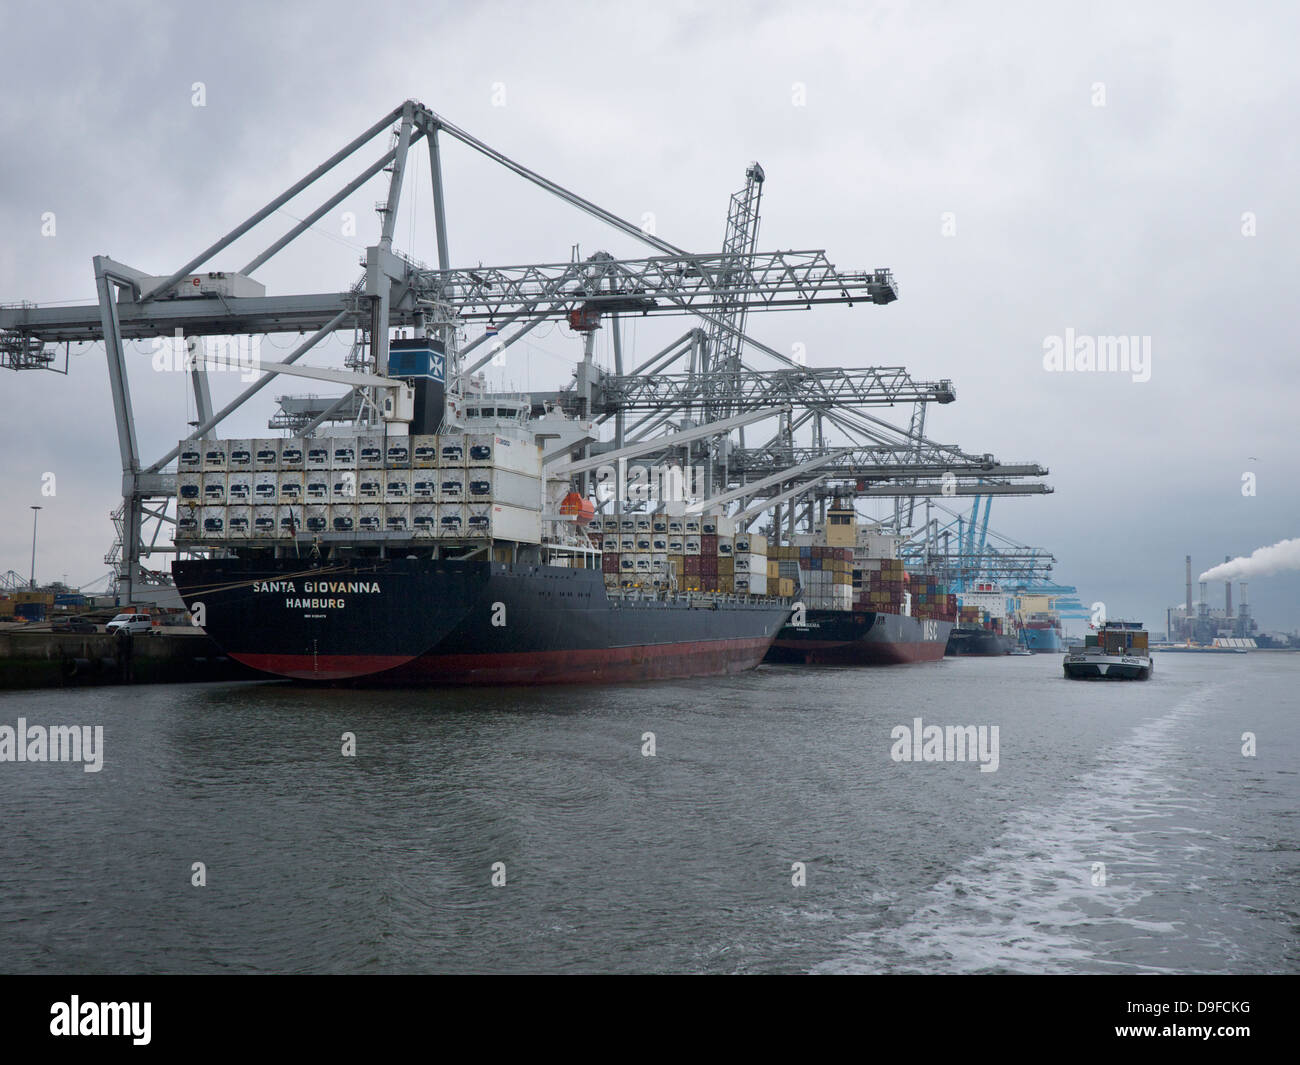 The new container terminals on the Maasvlakte 2, the expansion area of the port of Rotterdam, the Netherlands - Stock Image